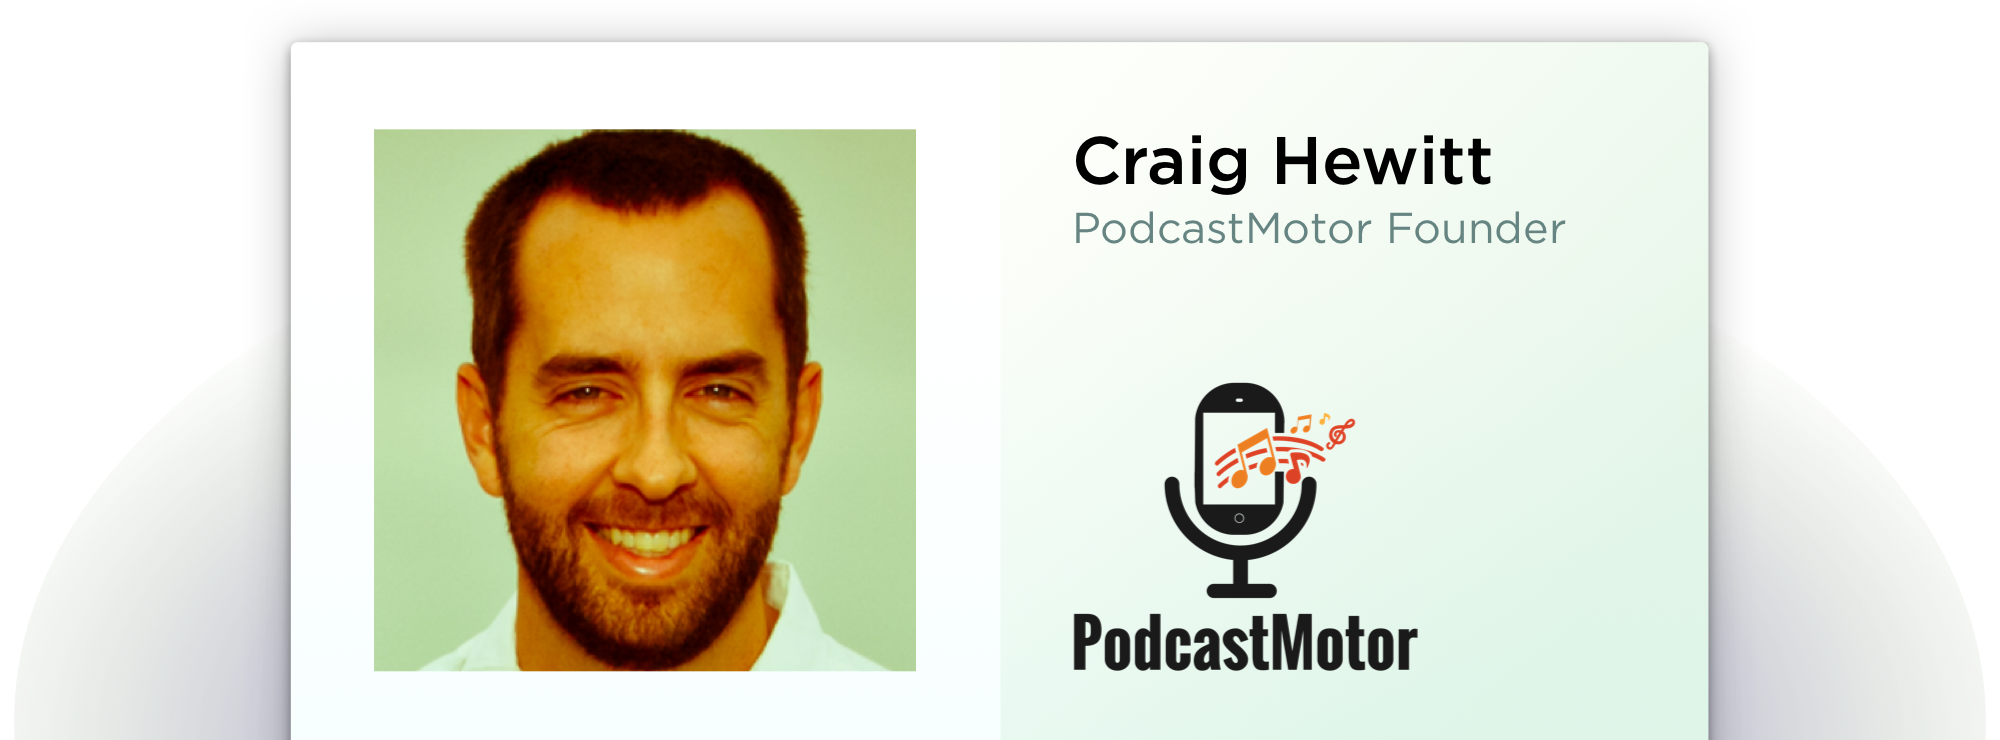 Revving Up PodcastMotor: Growing a Productized Service with Quality Content